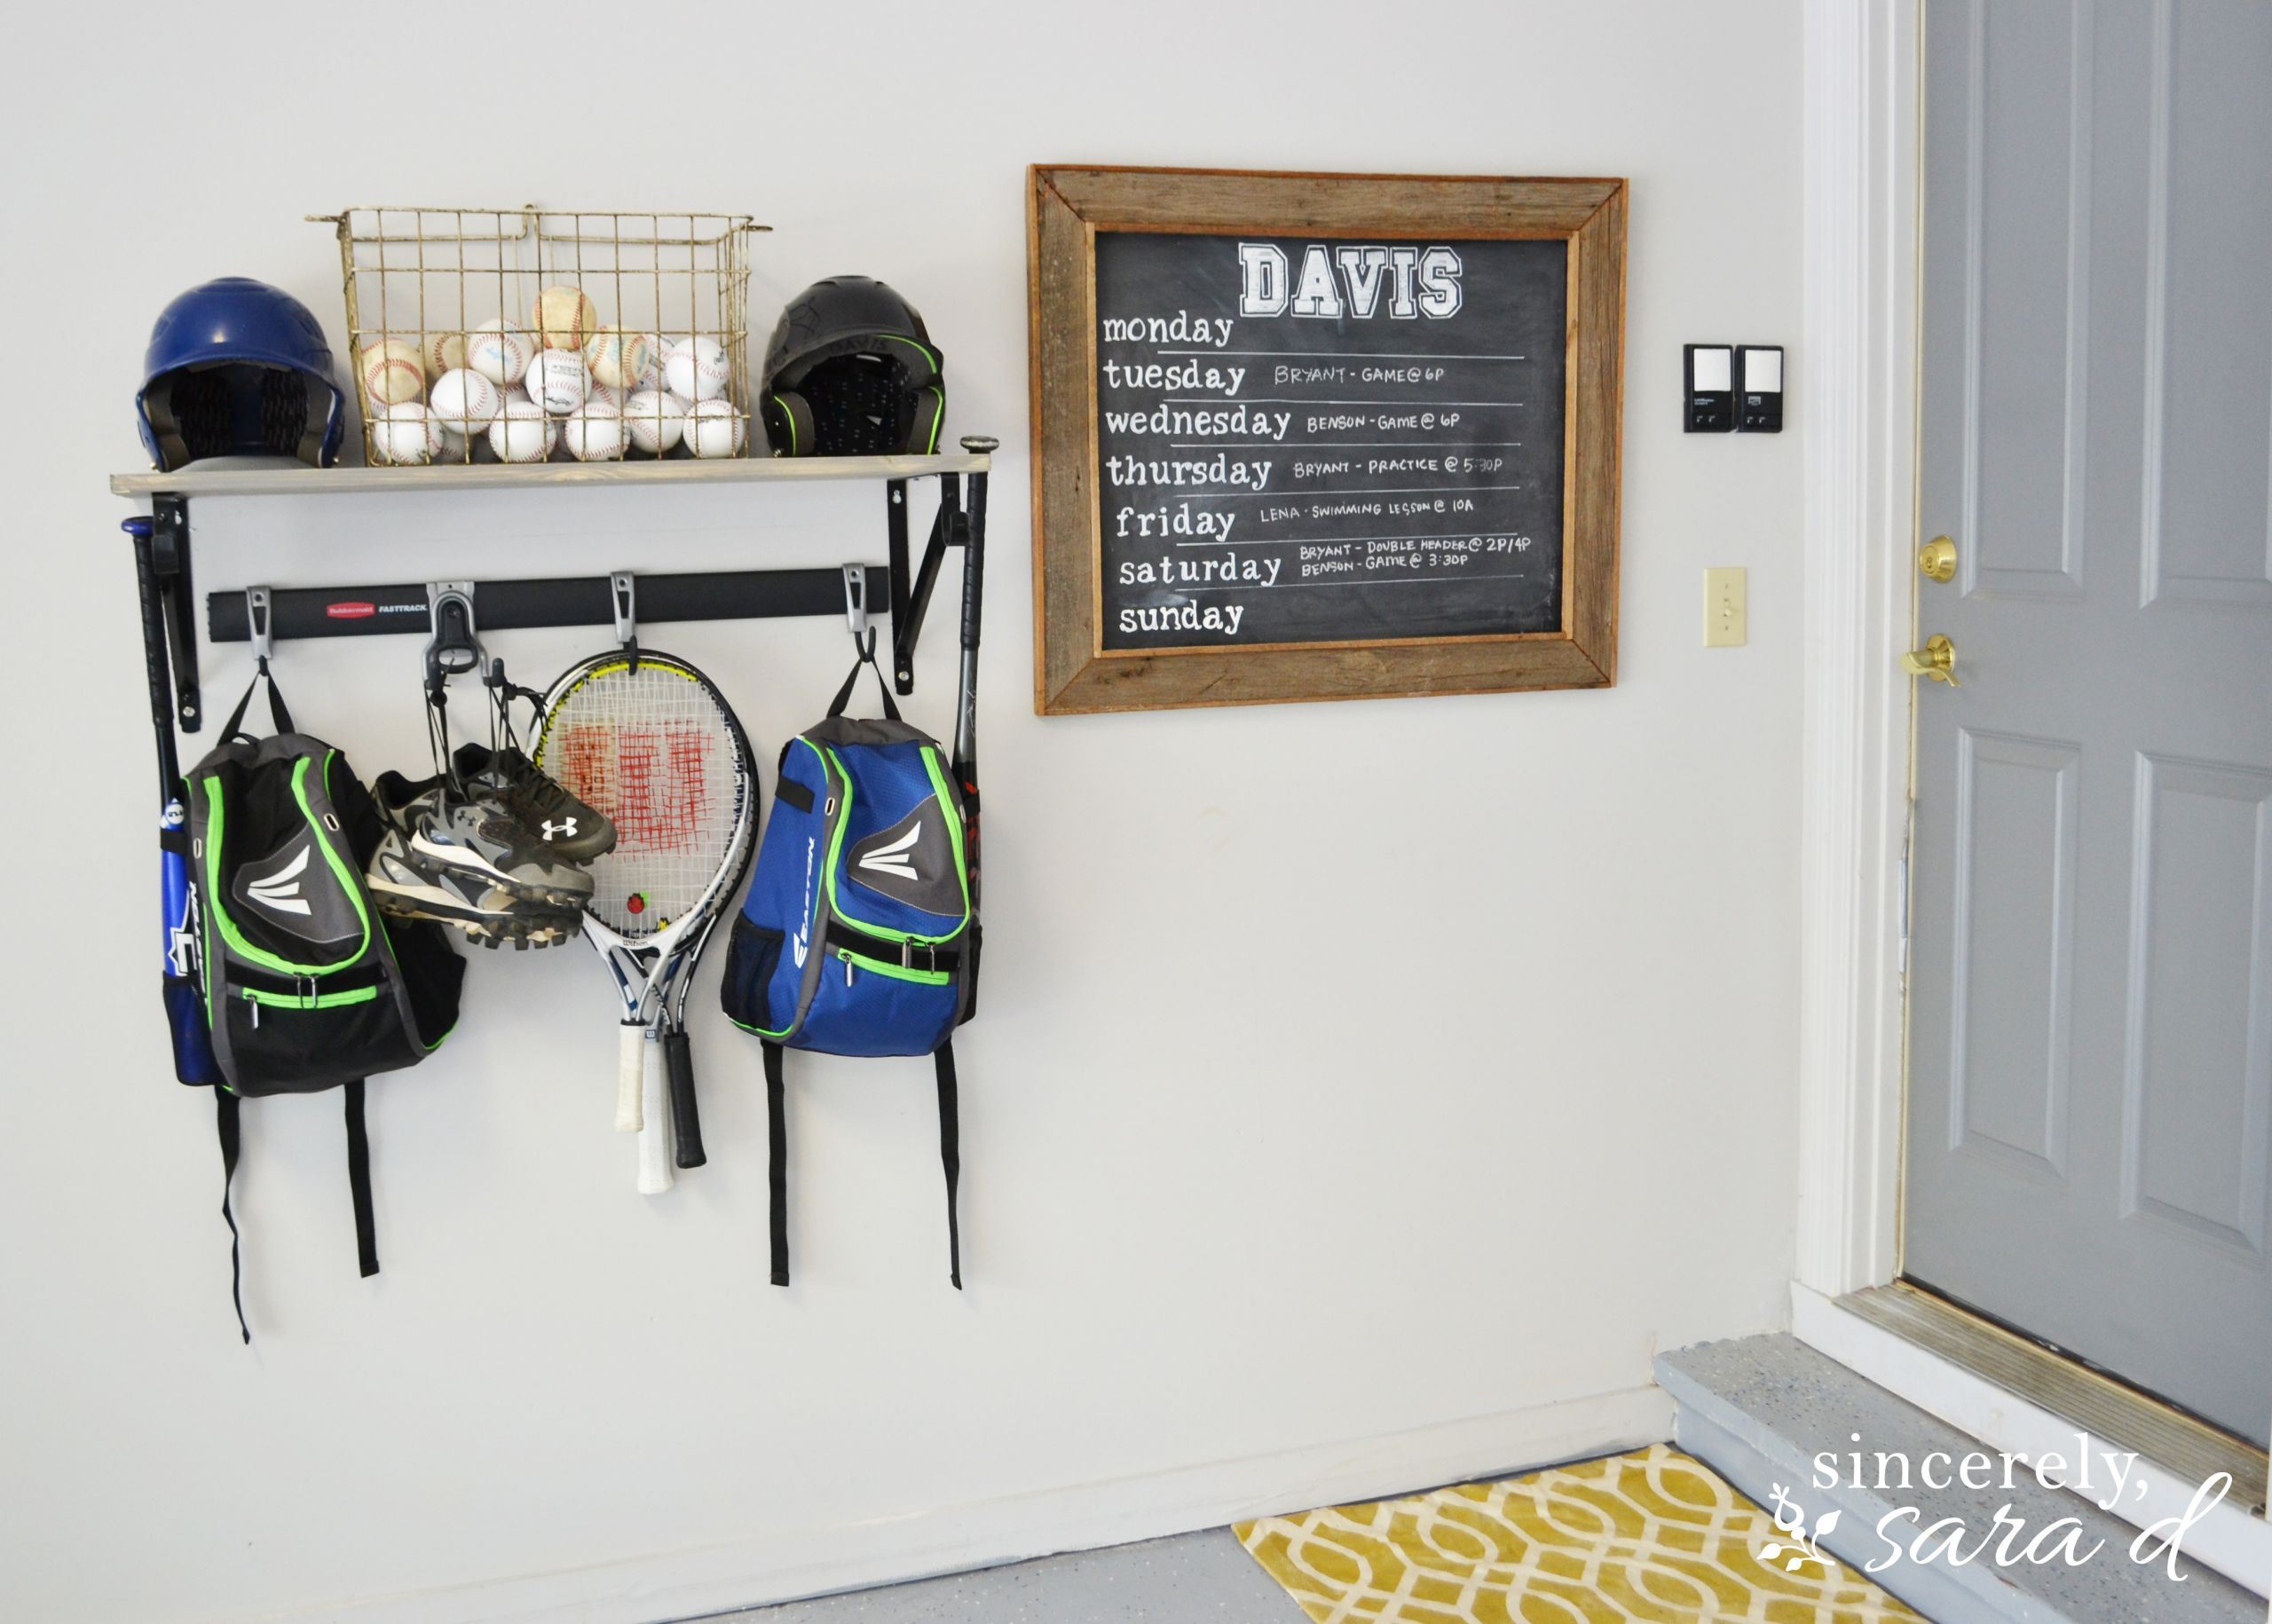 Sports Equipment Organizer For Garage  Organizing with Rubbermaid s FastTrack system